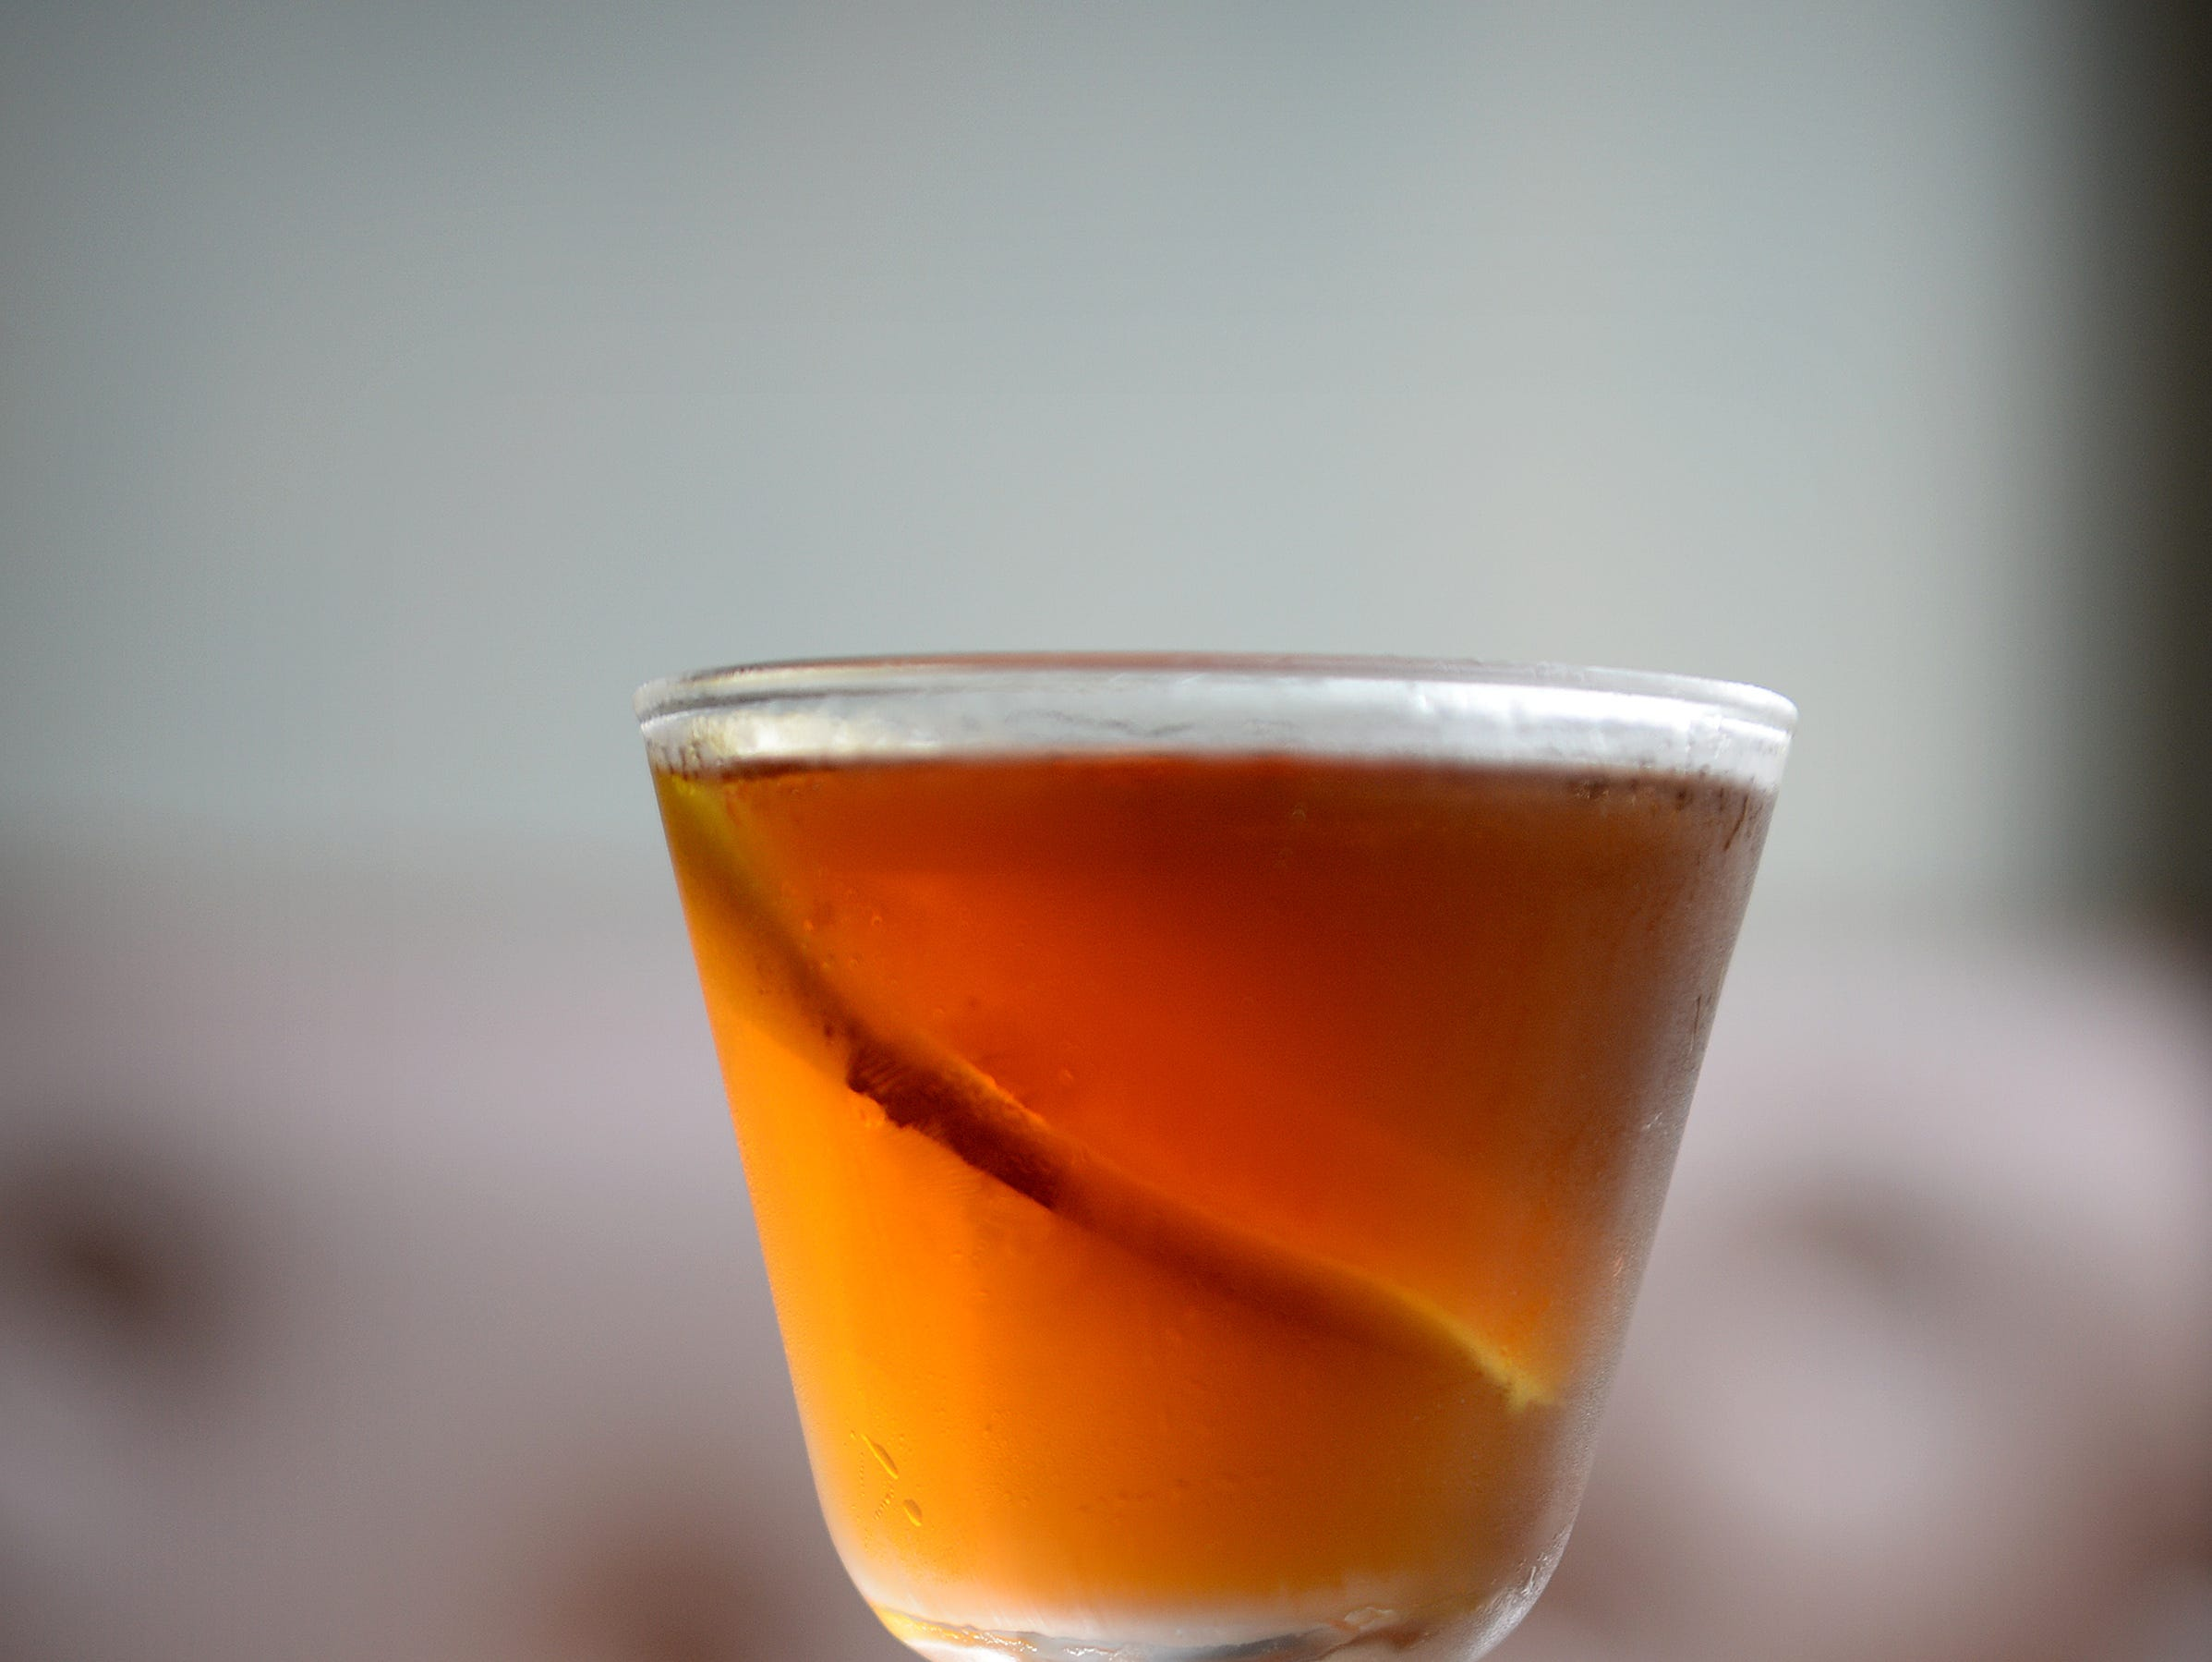 Little Jumbo's Revolver is a variation on a Manhattan with bourbon, coffee liqueur and orange bitters.